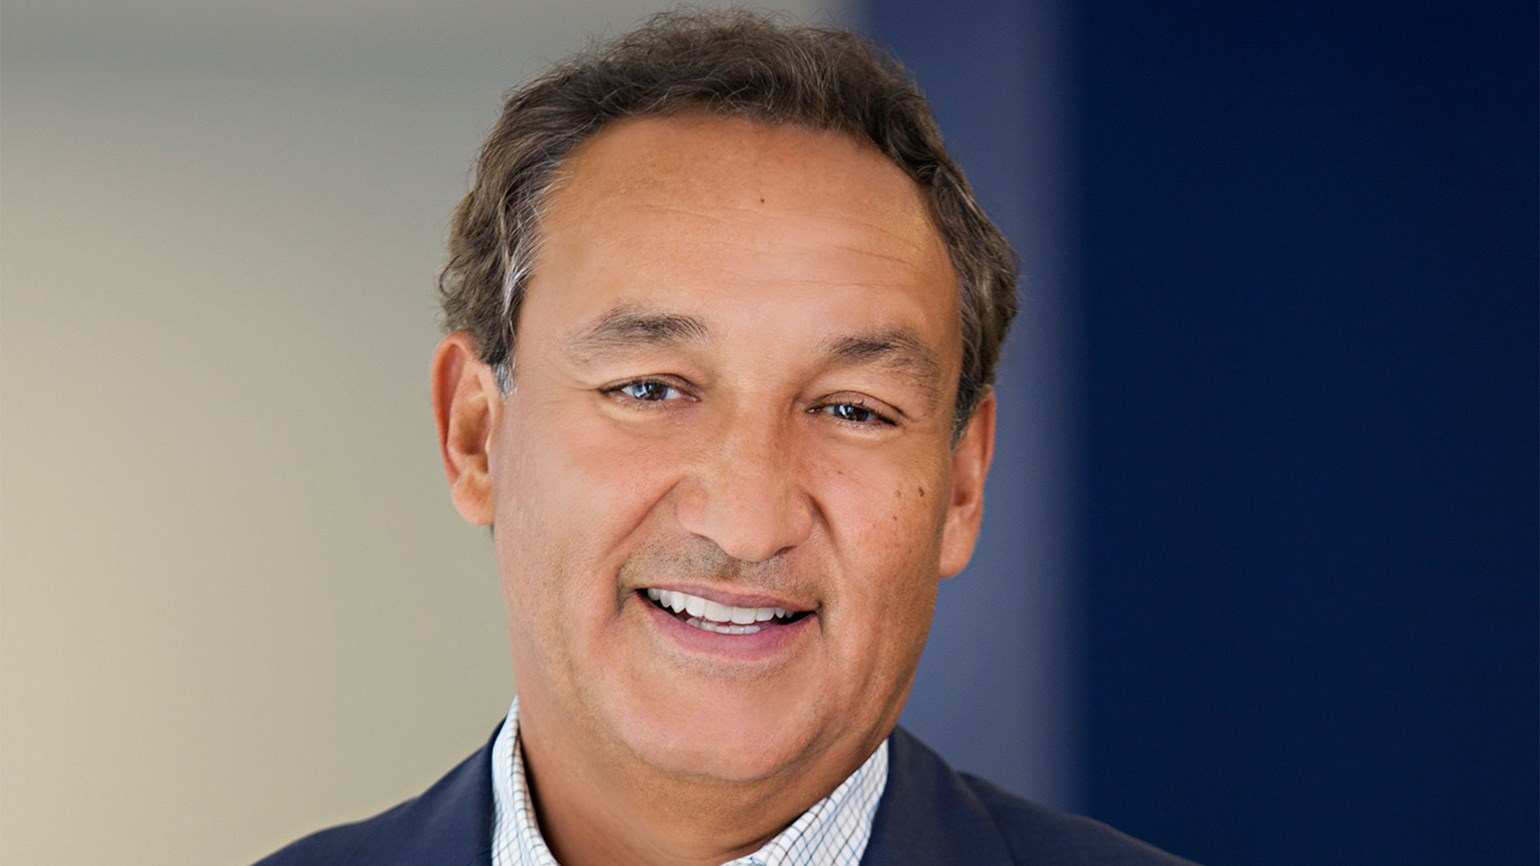 United CEO Munoz well-regarded by employees